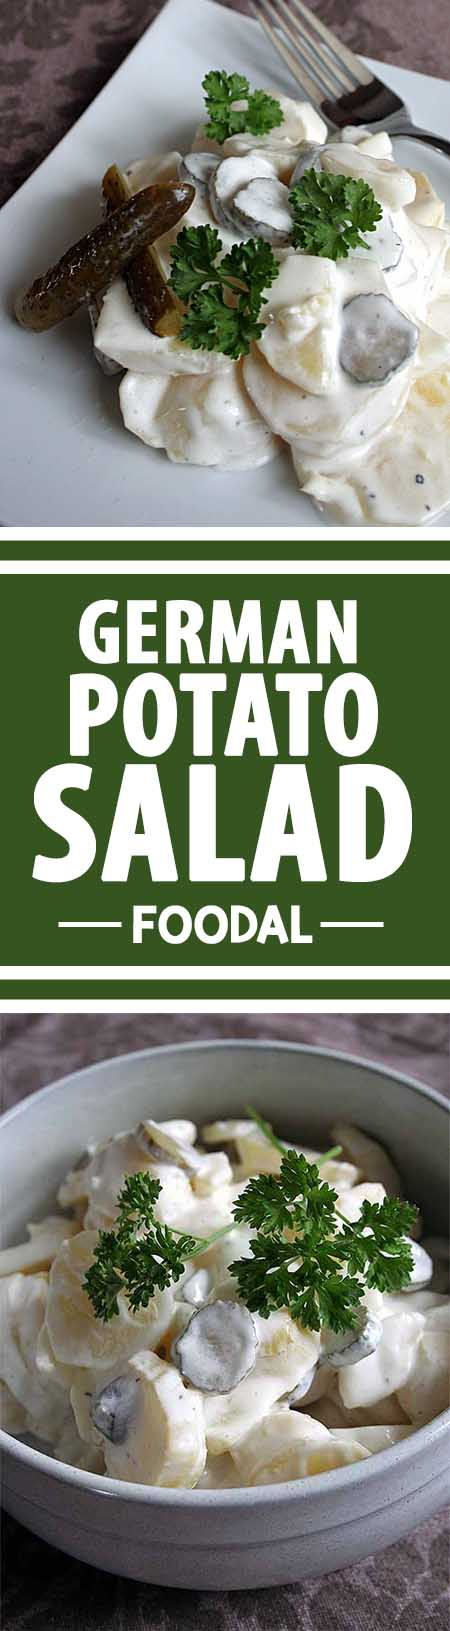 This typical German side dish is a perfect choice for your summer BBQ, family get-together, or Oktoberfest celebration. It goes so well with every kind of sausages, steaks, ribs, or grilled vegetables. https://foodal.com/recipes/sides/german-potato-salad/